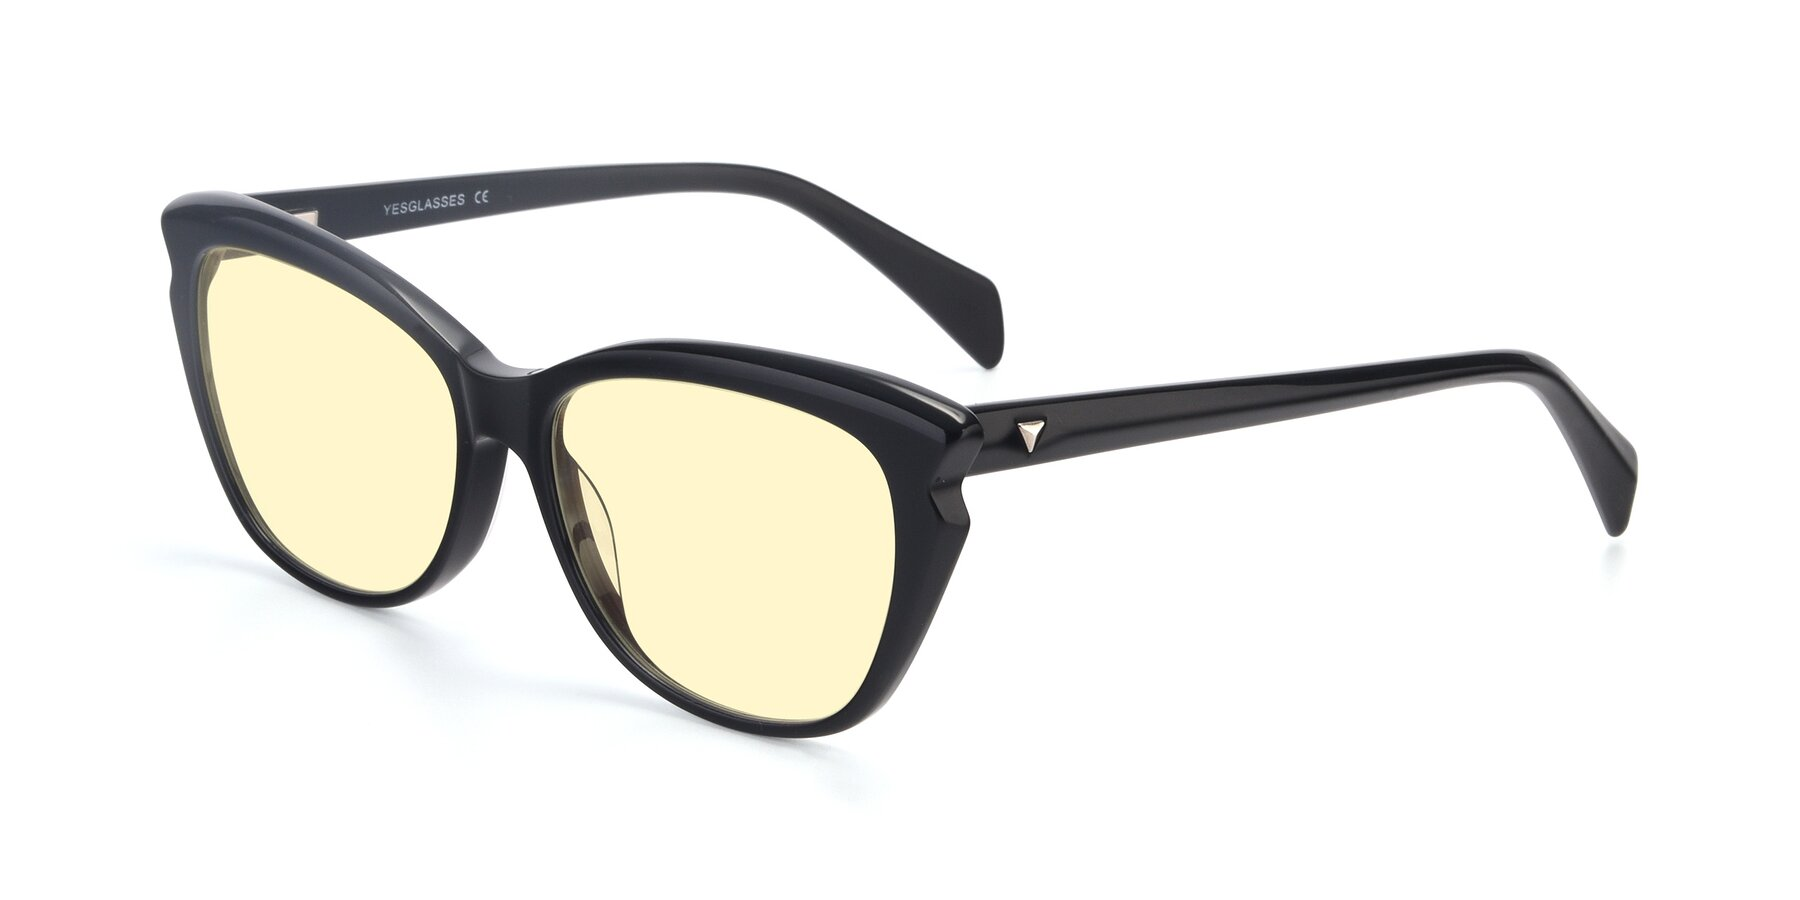 Angle of 17629 in Black with Light Yellow Tinted Lenses